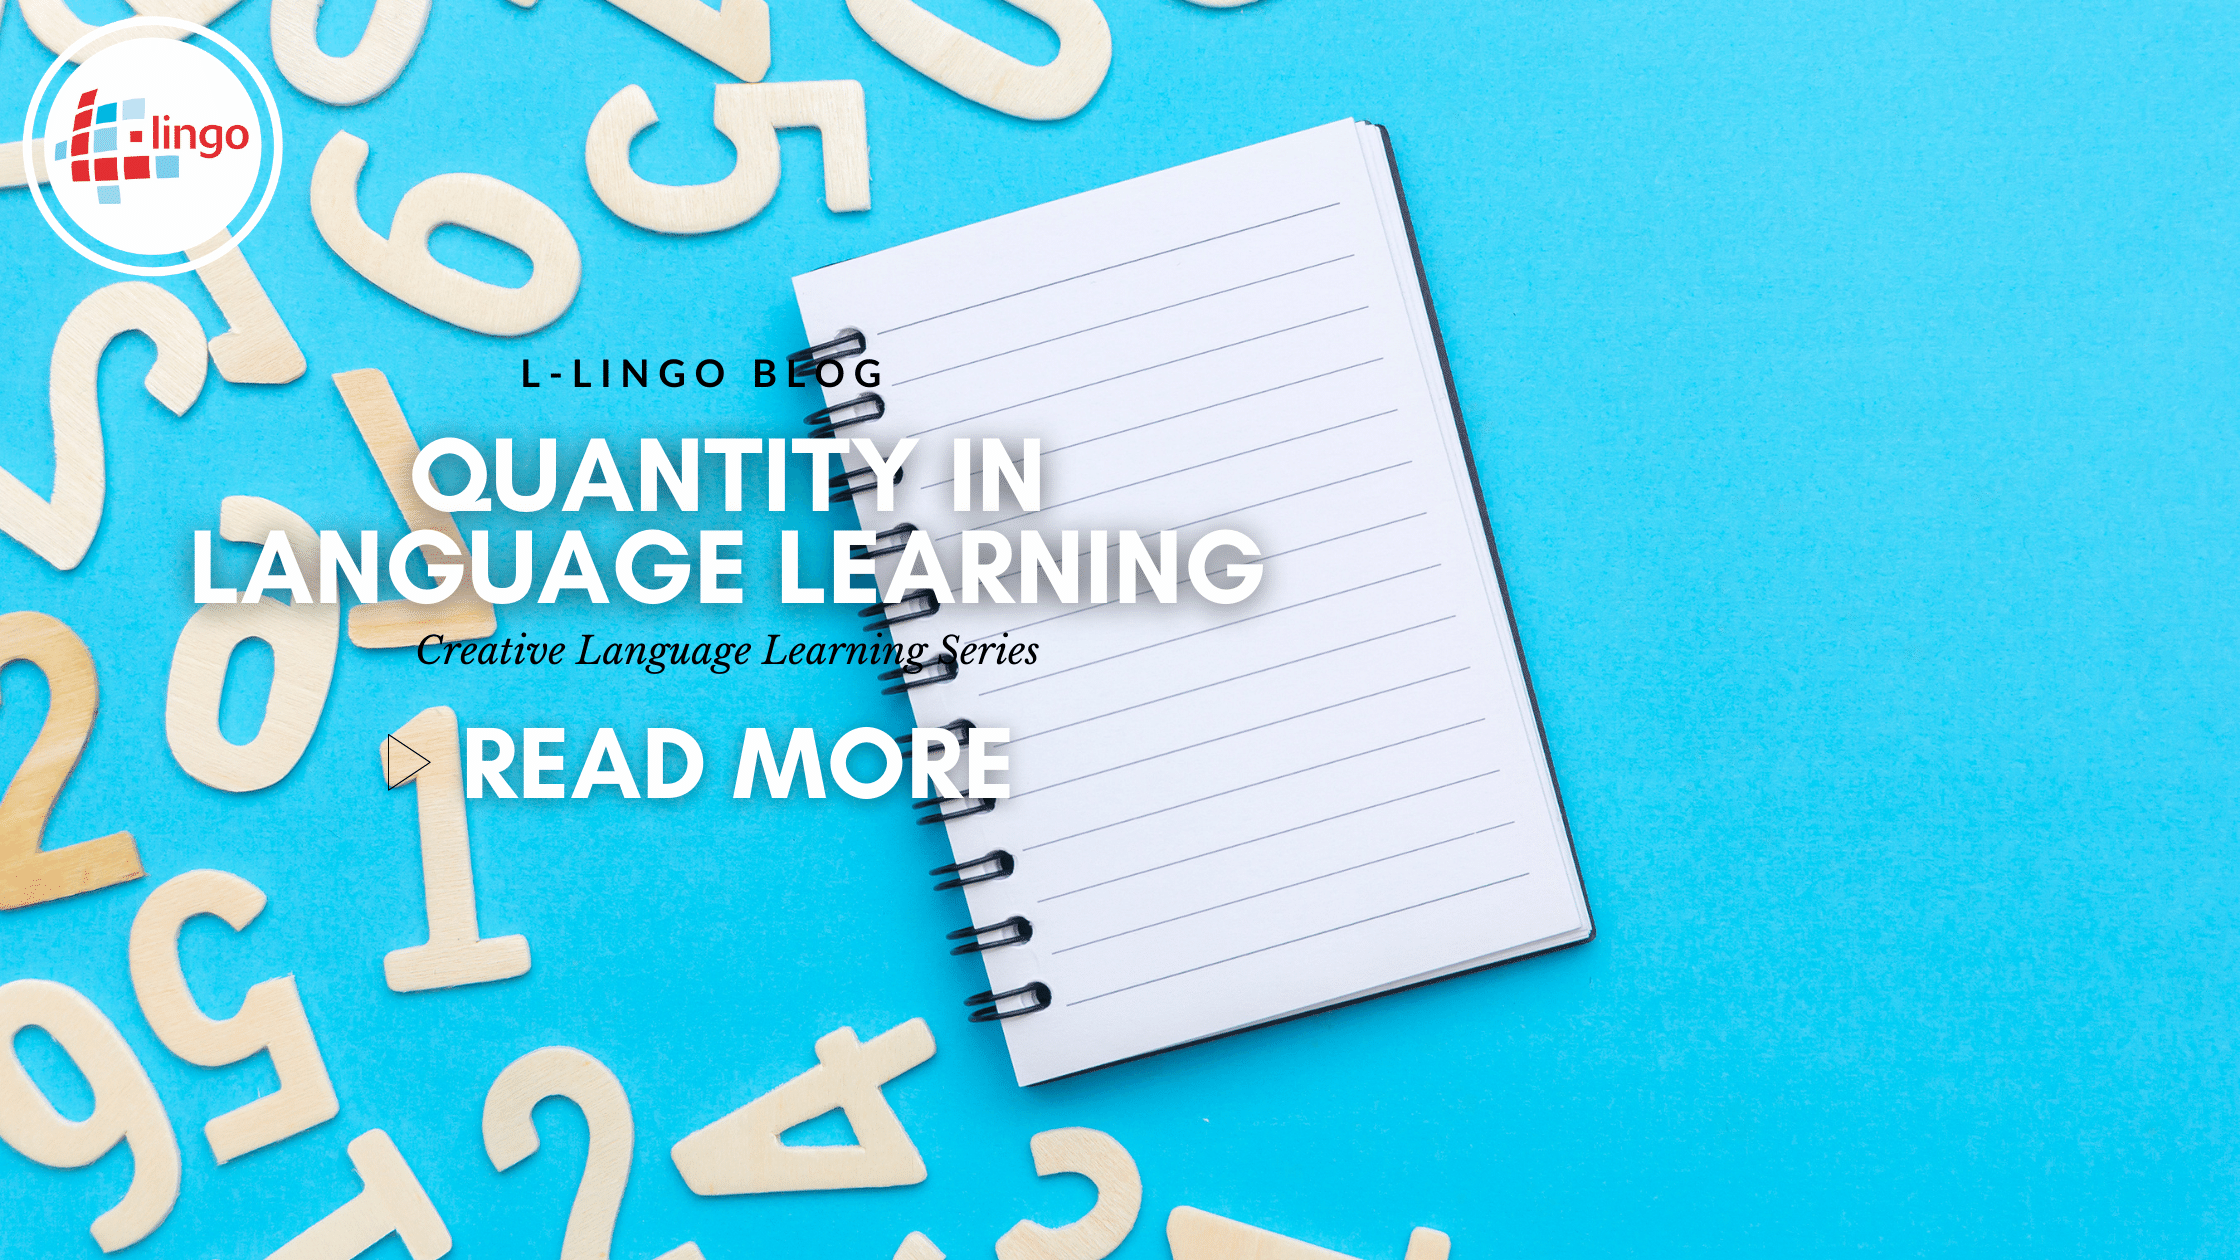 QUANTITY IN LANGUAGE LEARNING